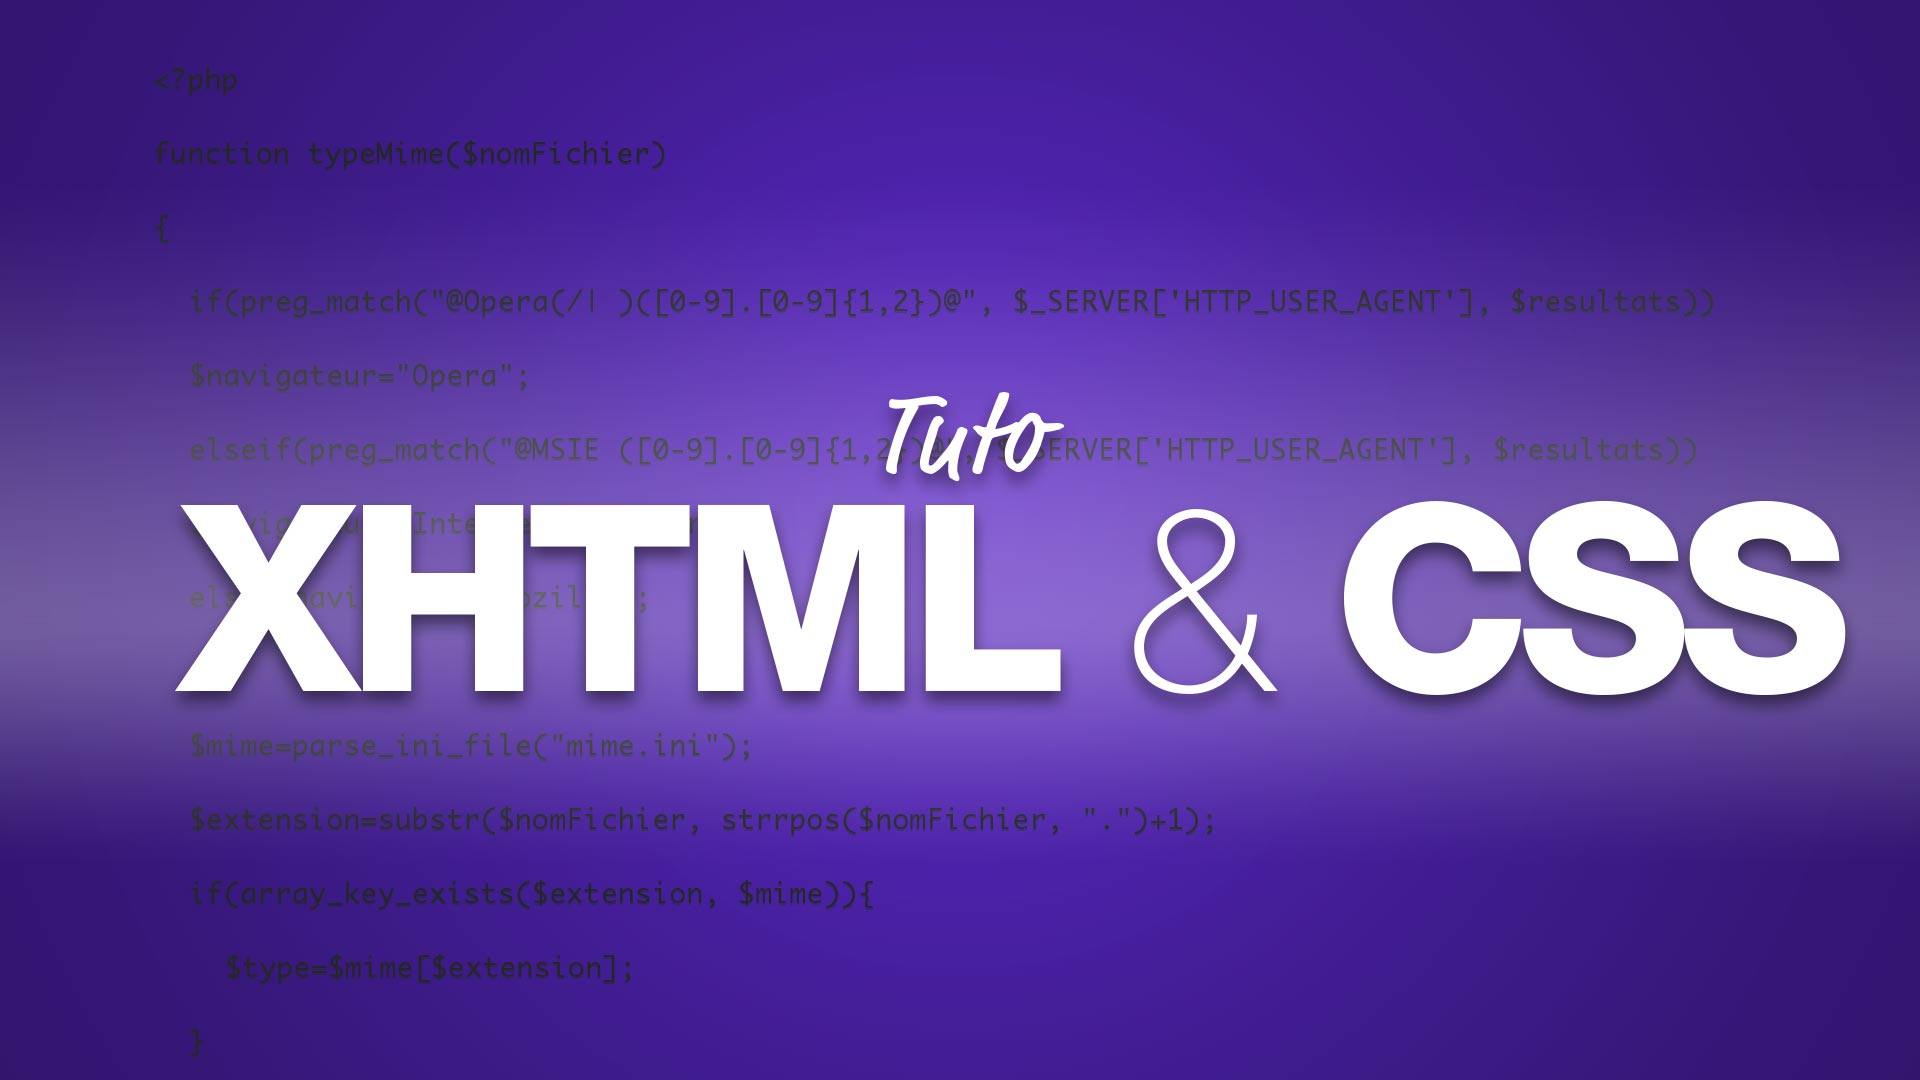 Apprendre XHTML & CSS